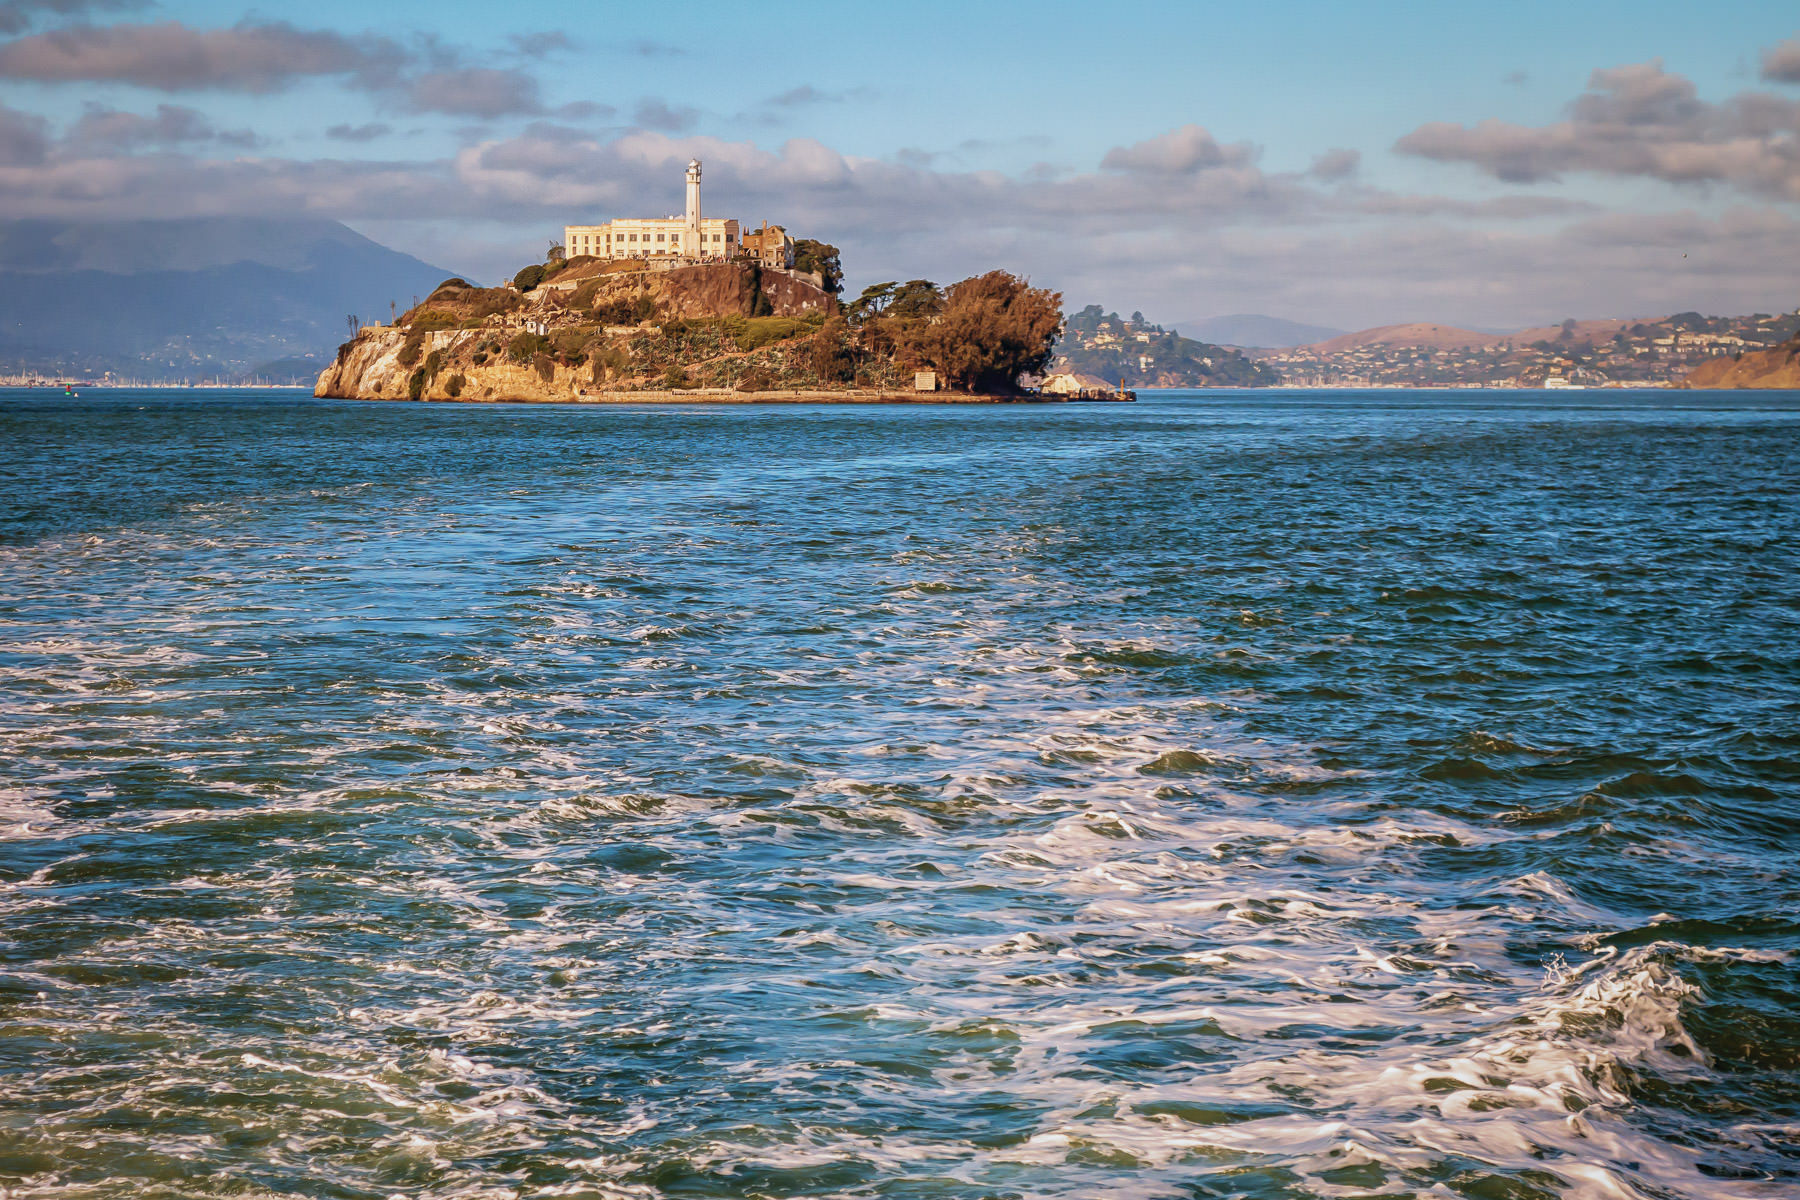 Alcatraz Island recedes in the distance of San Francisco Bay as seen from the deck of the excursion boat Alcatraz Flyer.